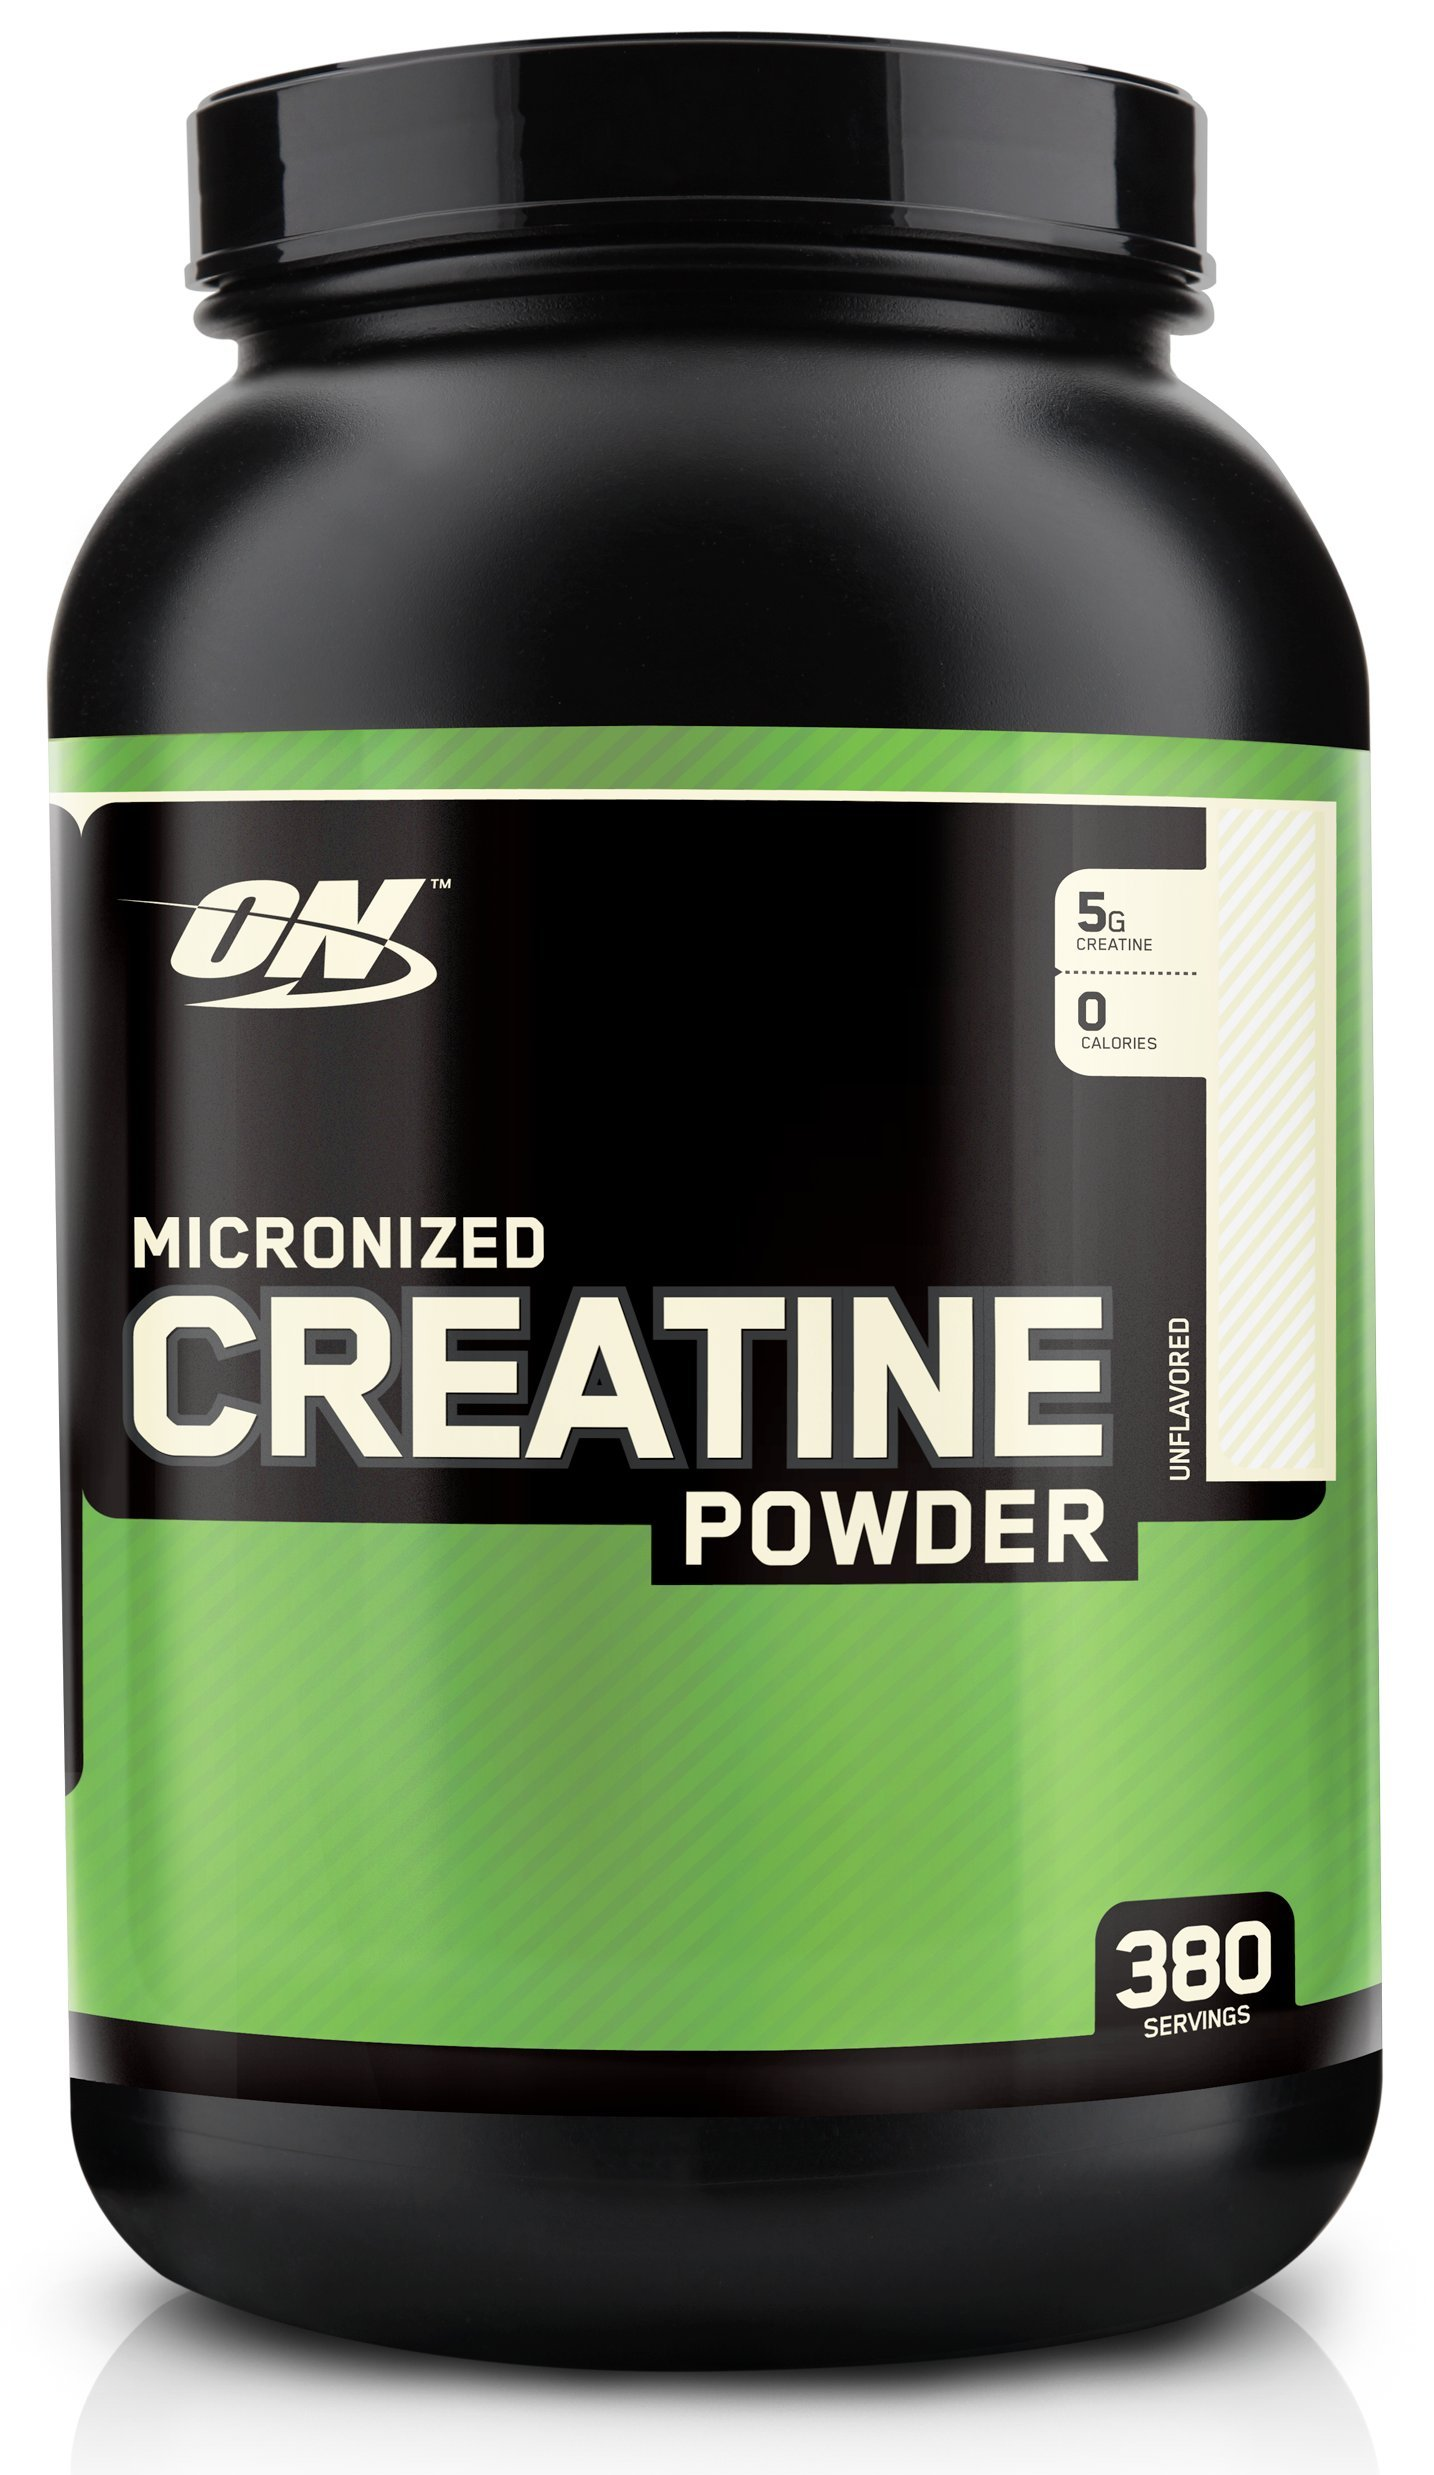 OPTIMUM NUTRITION Micronized Creatine Powder, Unflavored, 4.4 Pound by Optimum Nutrition